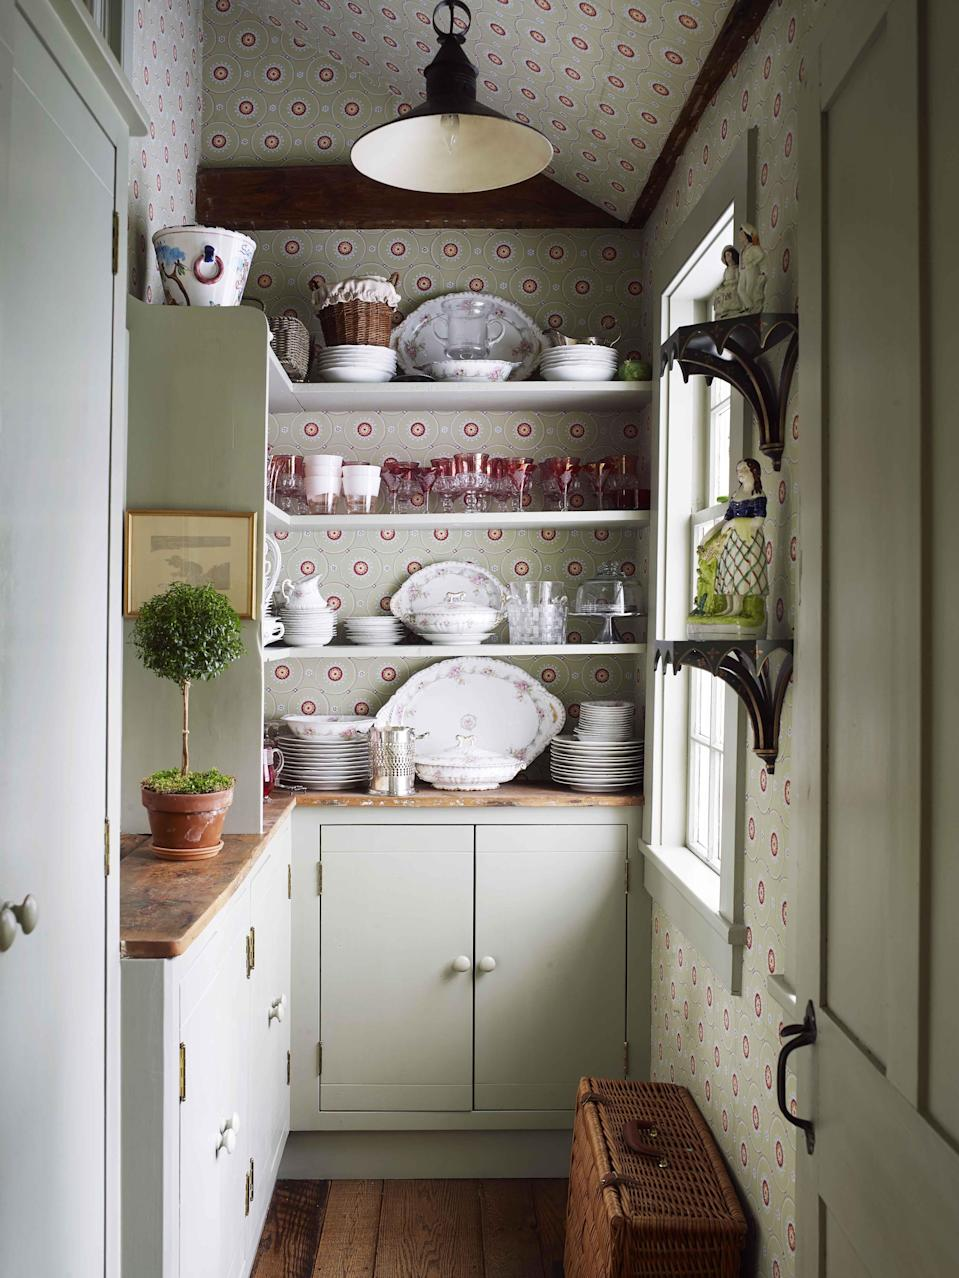 "<p>The <a href=""https://www.veranda.com/decorating-ideas/g34955481/modern-kitchens/"" rel=""nofollow noopener"" target=""_blank"" data-ylk=""slk:kitchen"" class=""link rapid-noclick-resp"">kitchen</a> has truly become the heart of the home again in 2020, acting as a restaurant for serving nearly all of your household's meals, a place to do homework and catch up on cartoons, a spot to drink coffee while you start your workday, and a lounge for having cocktails via Zoom with friends. While many of us tackled some <a href=""https://www.veranda.com/shopping/home-accessories/g34132075/the-home-edit-netflix-best-products/"" rel=""nofollow noopener"" target=""_blank"" data-ylk=""slk:looming organizational projects"" class=""link rapid-noclick-resp"">looming organizational projects</a> at the onset of stay-at-home orders, it's time to rethink how this ever-important space can better work for us—and how we can maximize every square inch. </p><p>Whether you're a hostess in dire need of a <a href=""https://www.veranda.com/decorating-ideas/a29529319/guide-to-party-closets/"" rel=""nofollow noopener"" target=""_blank"" data-ylk=""slk:party closet"" class=""link rapid-noclick-resp"">party closet</a>, a busy parent in need of a command center, or just an avid home cook who could use a little more strategy, these <a href=""https://www.veranda.com/decorating-ideas/a31740186/closet-organization-ideas/"" rel=""nofollow noopener"" target=""_blank"" data-ylk=""slk:design-forward organizational tips"" class=""link rapid-noclick-resp"">design-forward organizational tips</a> will help make your kitchen—and daily life—easier and more beautiful.</p>"